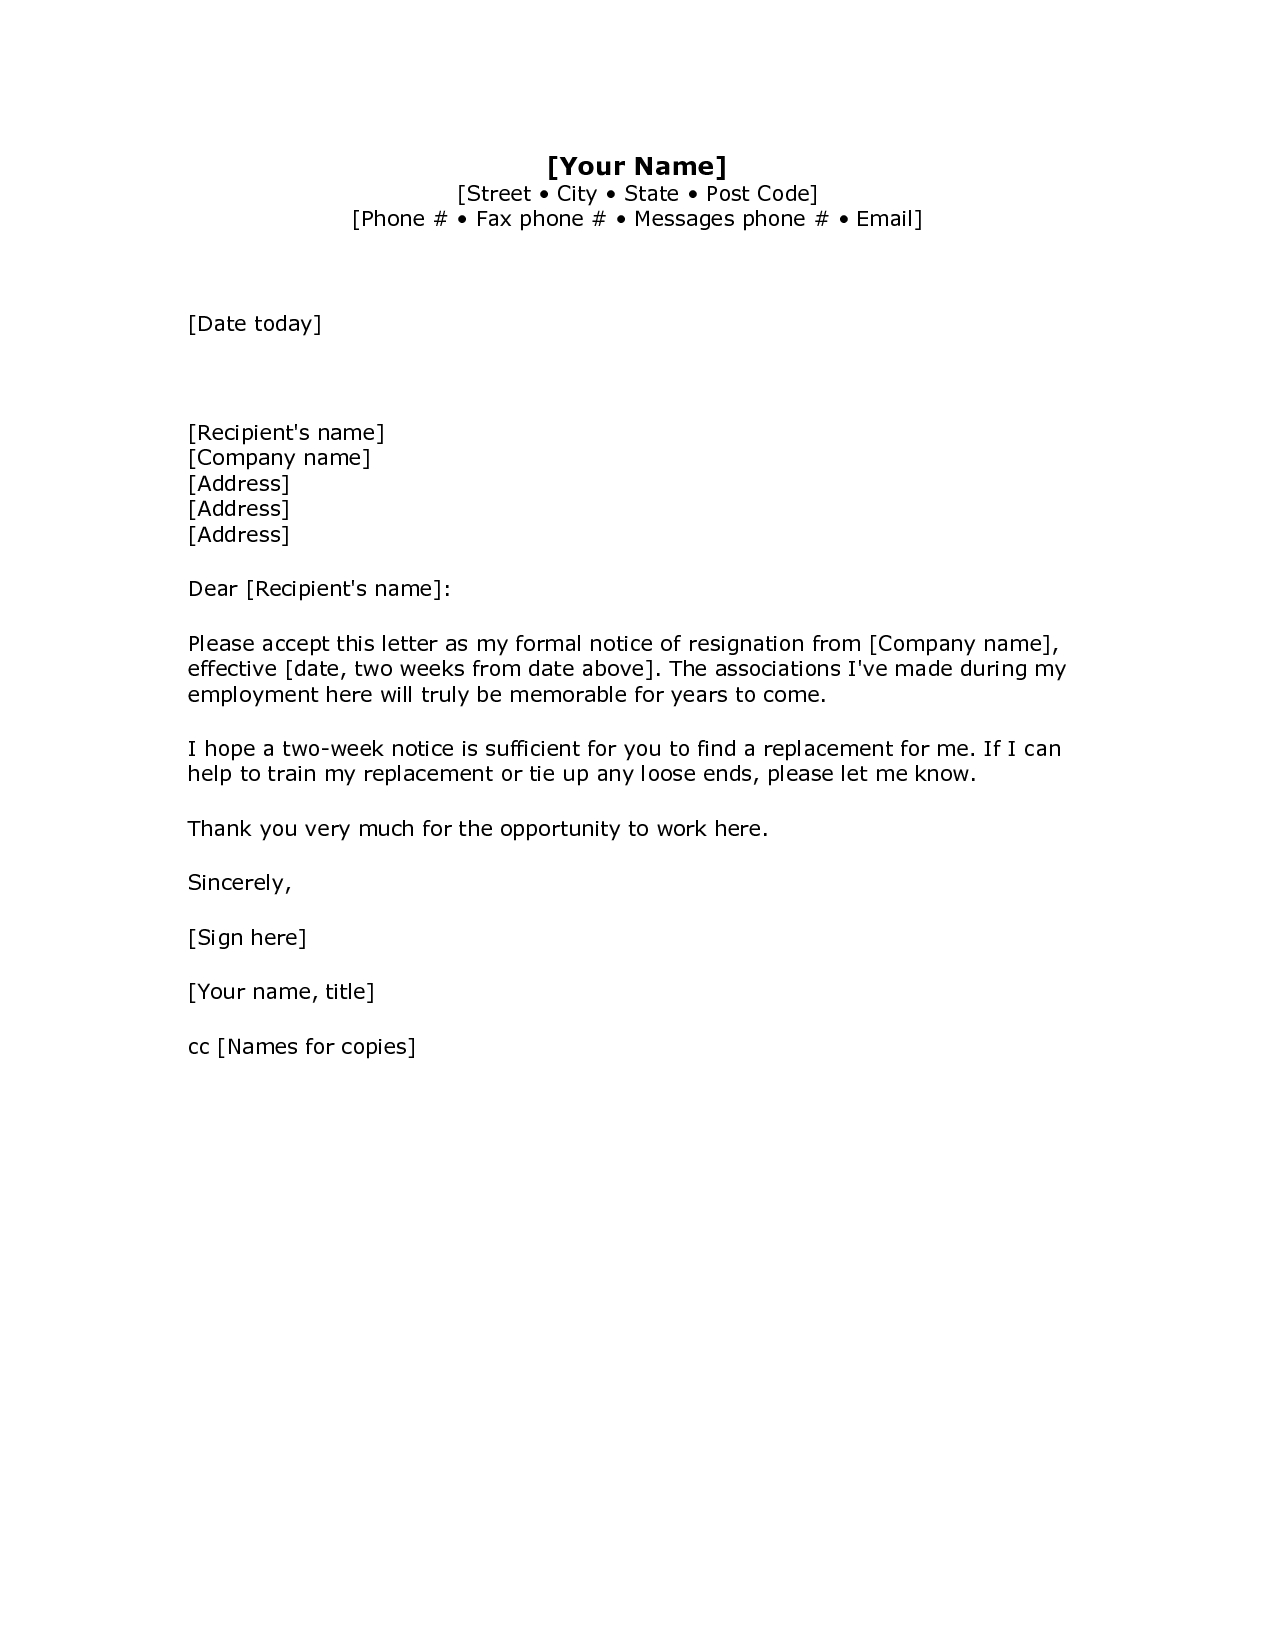 employee resignation letter template example-2 Weeks Notice Letter Resignation Letter Week Notice Words HDWriting A Letter Resignation Email Letter Sample 9-g